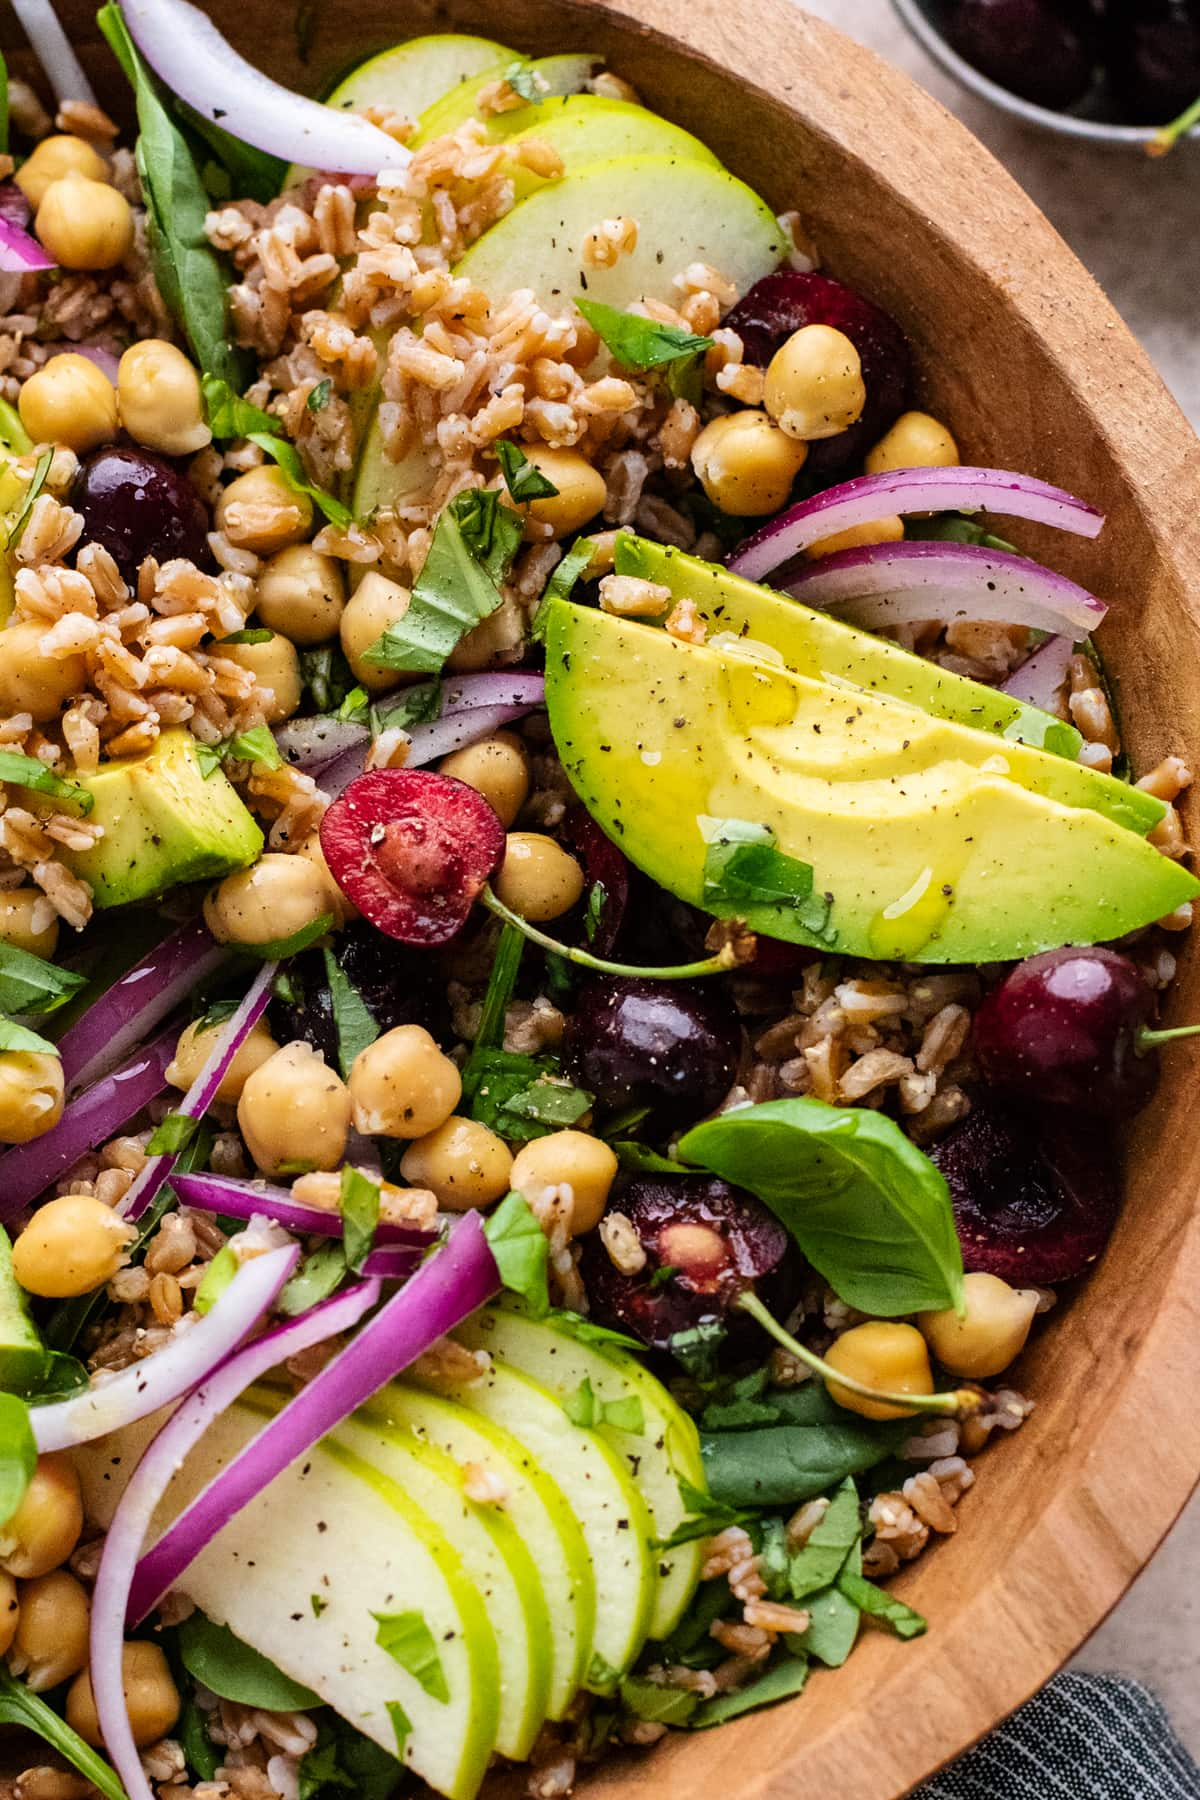 farro salad in a wooden bowl with avocado slices and cherries.